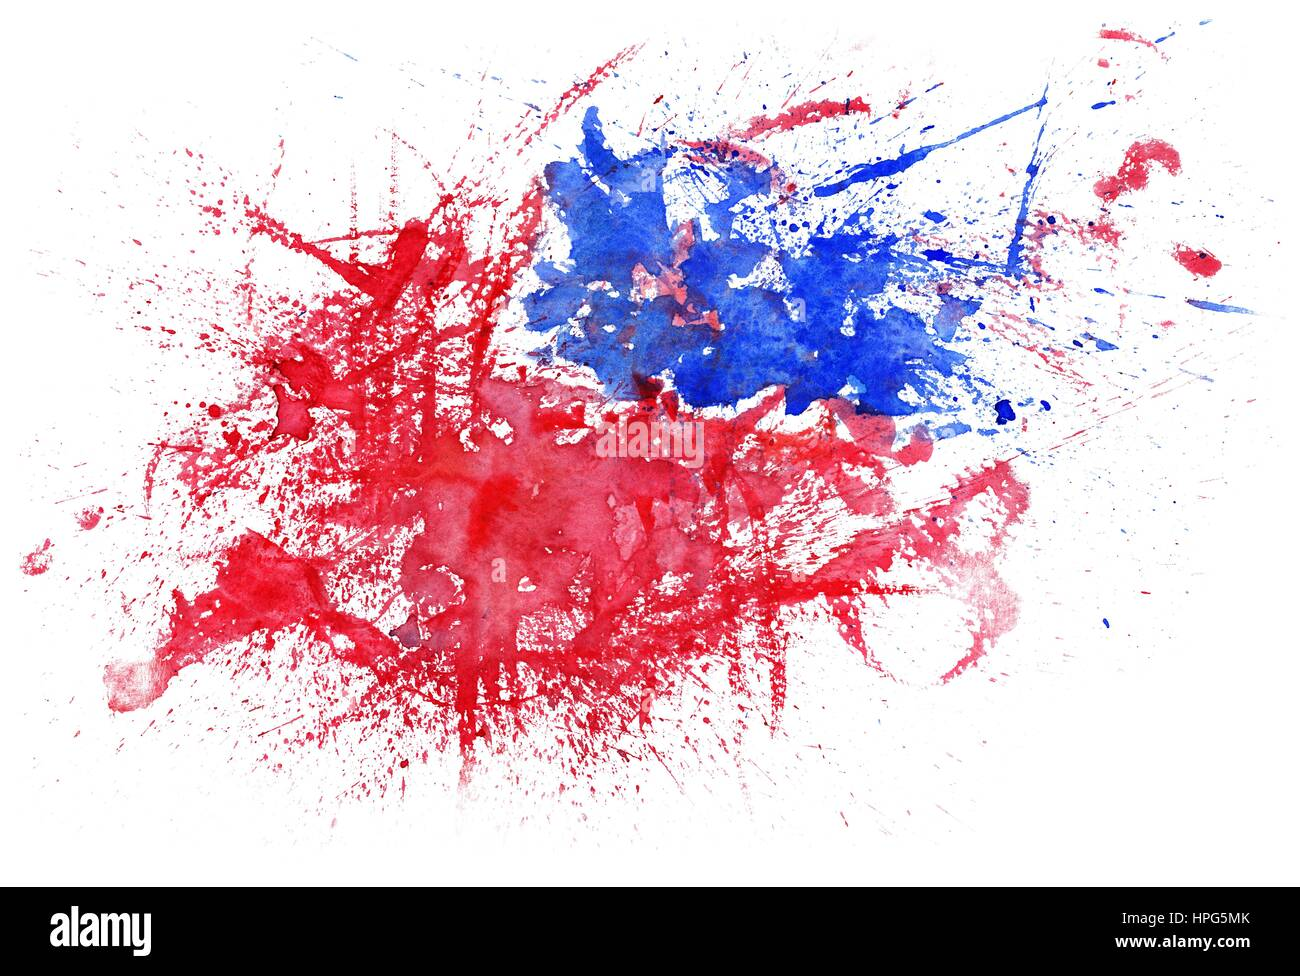 6524531823dc Splash emotional illustration with red and blue color blobs on white  background